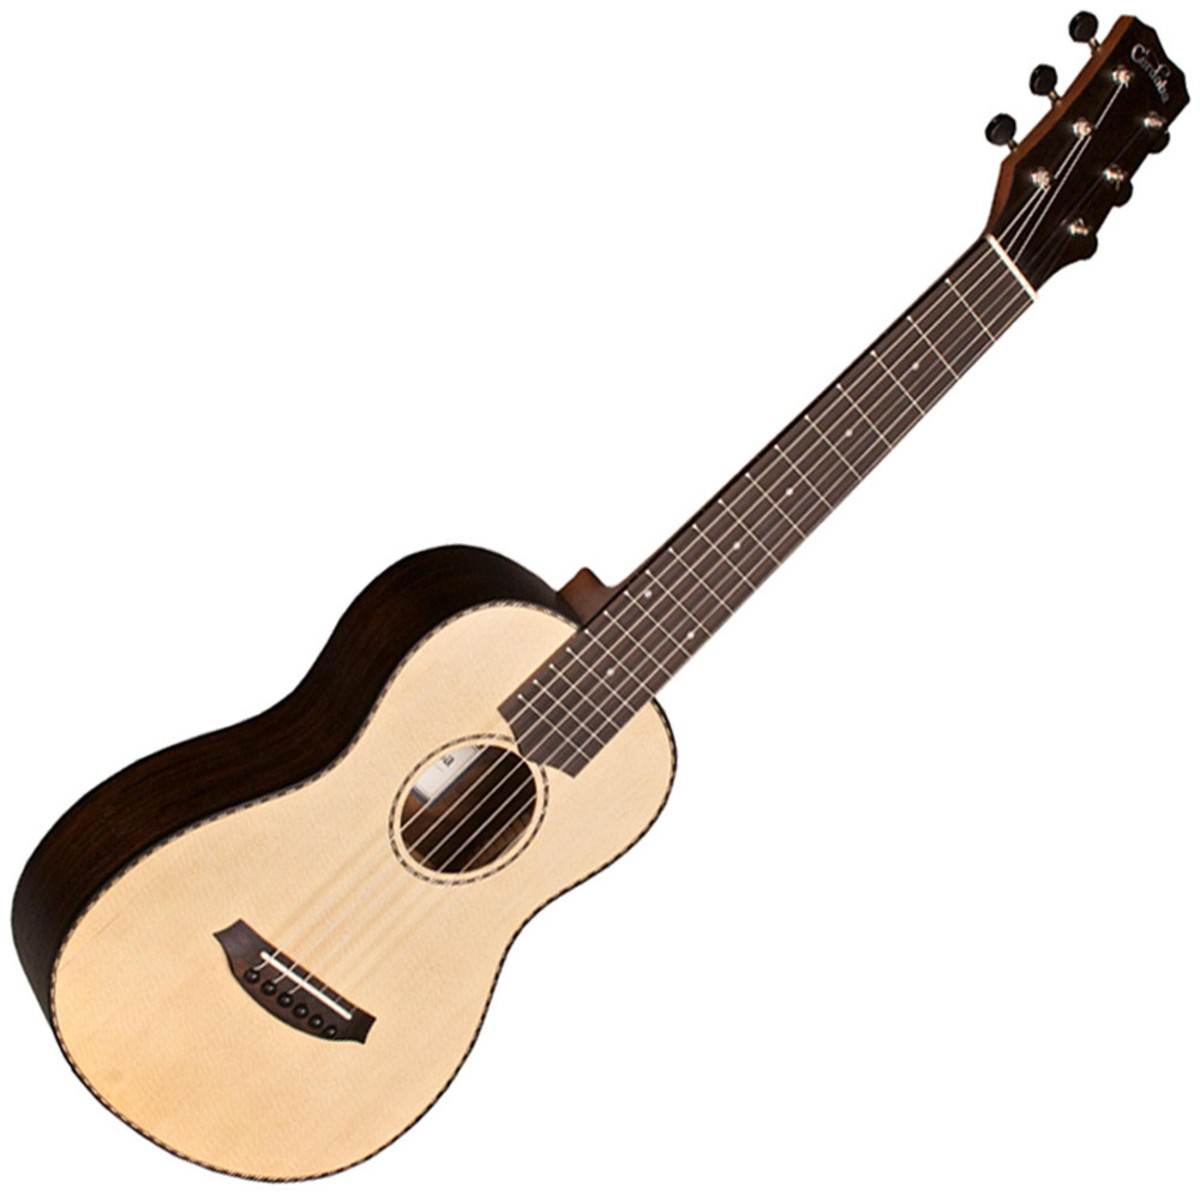 cordoba mini r acoustic travel guitar spruce top at gear4music. Black Bedroom Furniture Sets. Home Design Ideas